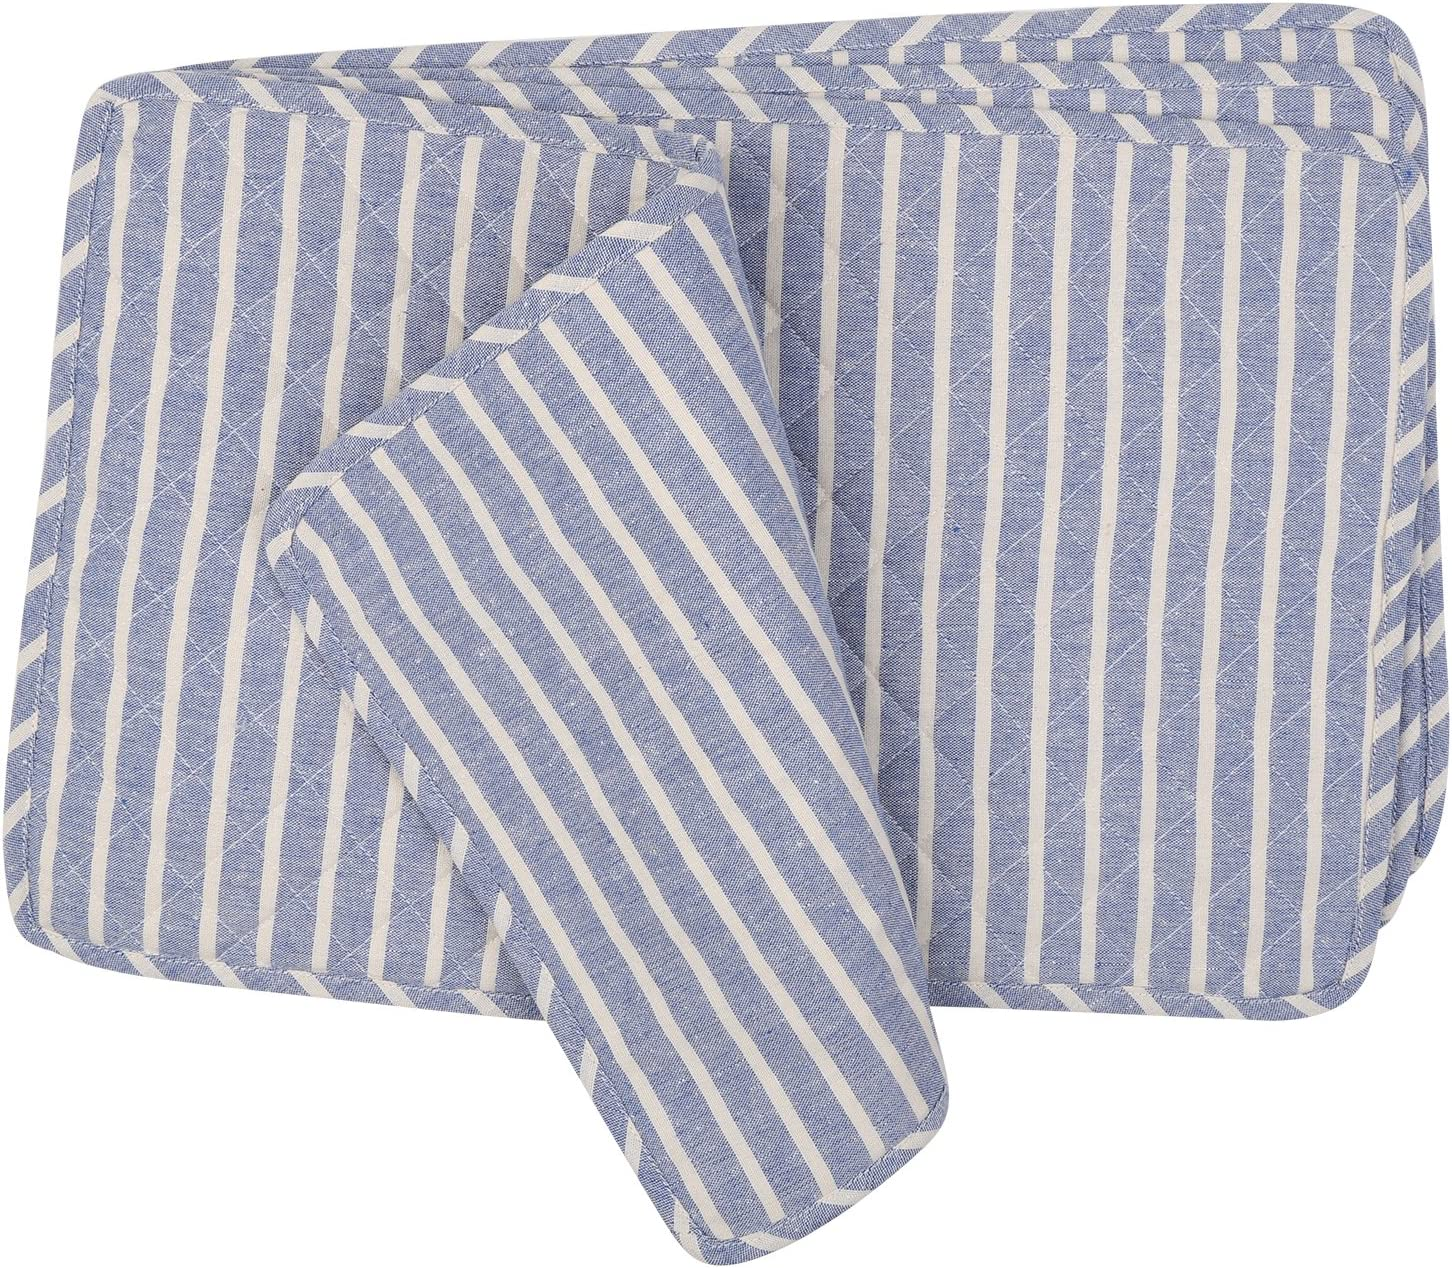 NEOVIVA Quilted Denim Placemats for Kitchen Table, Set of 4, Chalk Striped Cosmic Sky